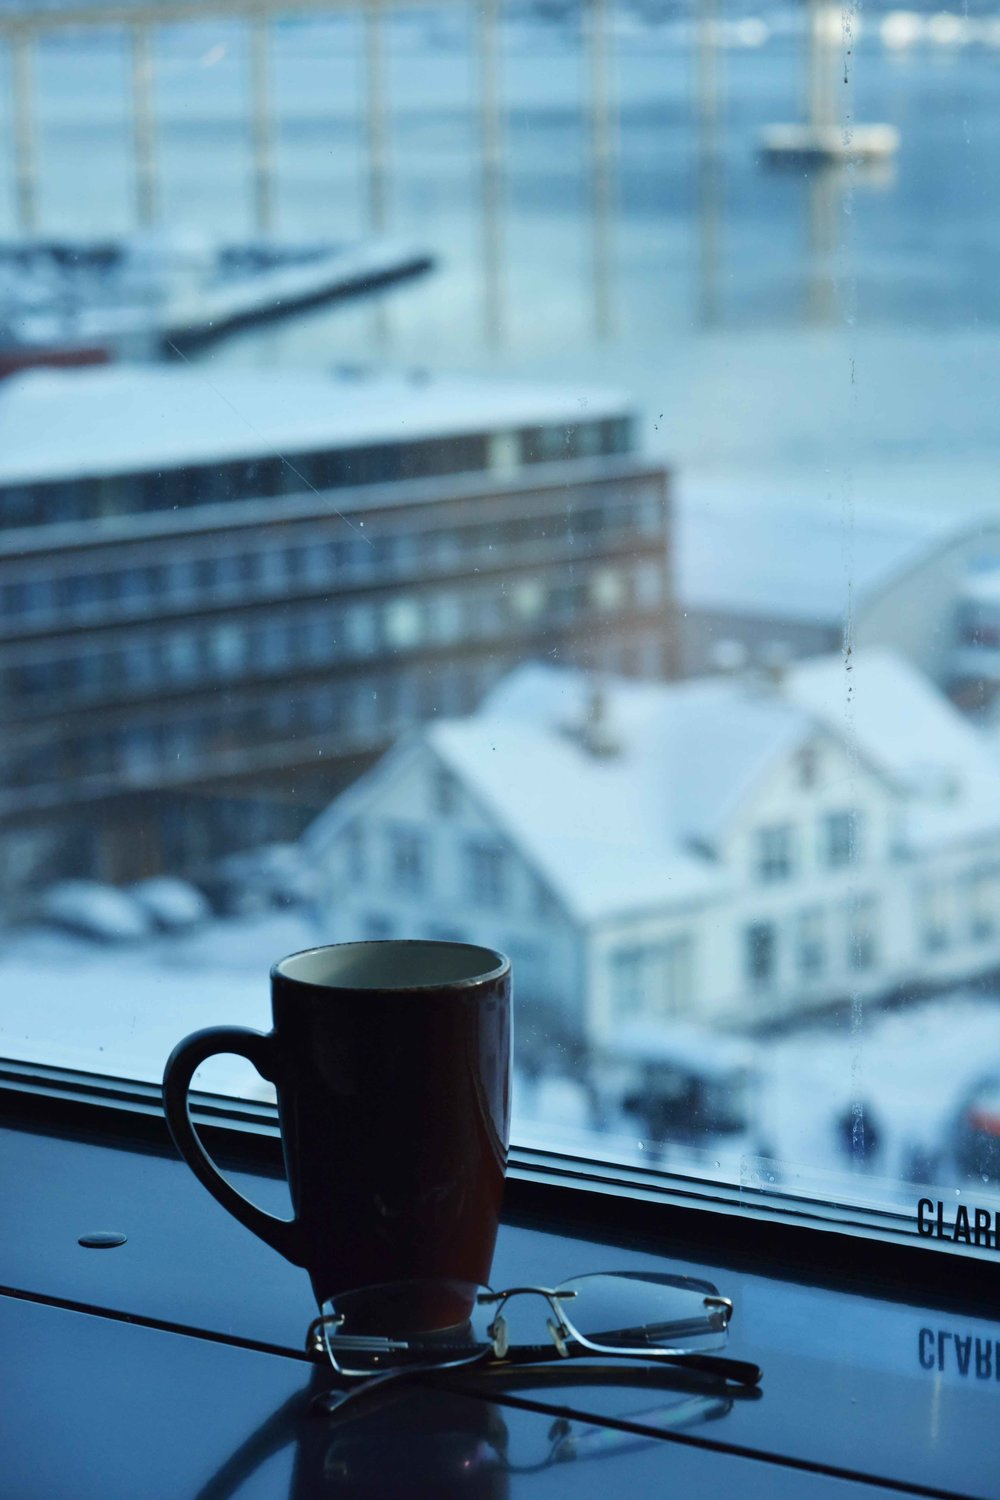 Views from the room, Clarion Hotel the Edge, Tromso, Norway. Image©thingstodot.com